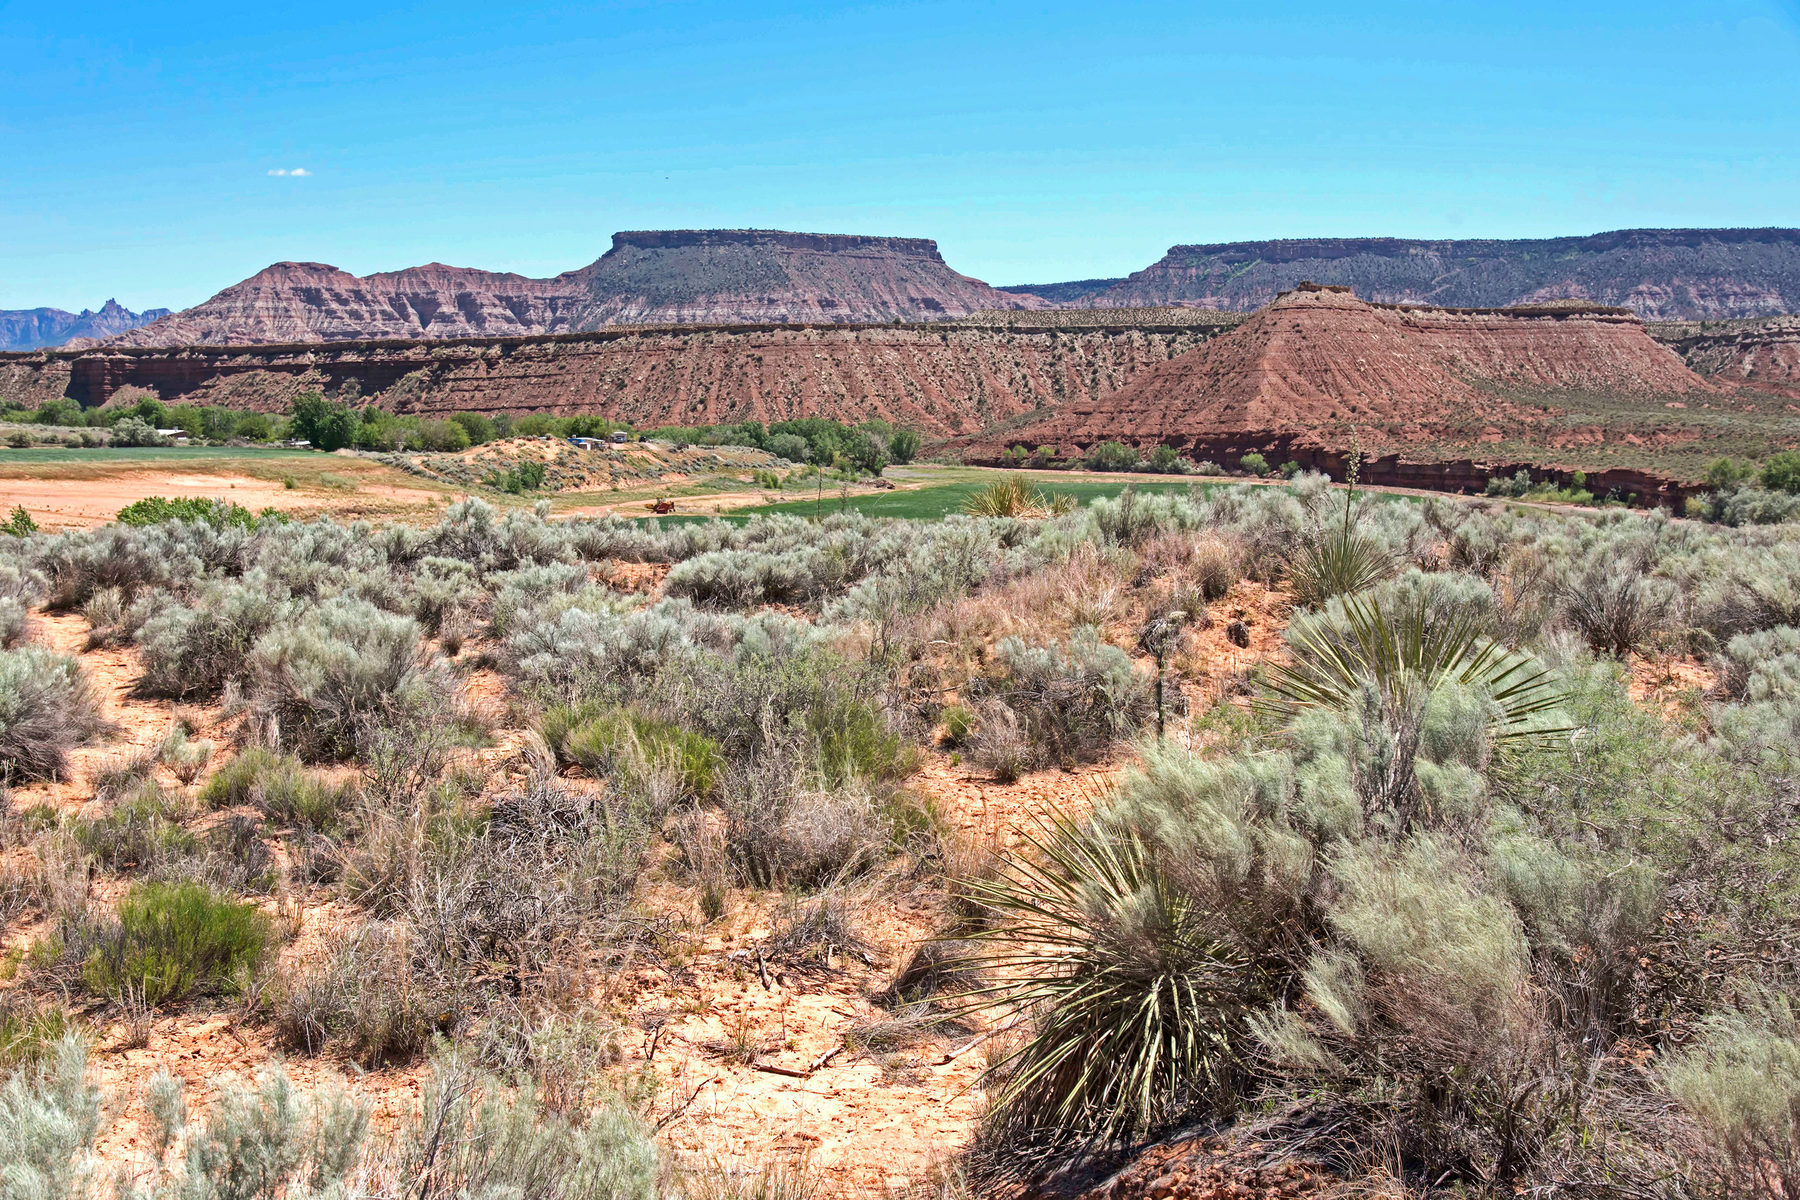 Terreno para Venda às 5 ACRES CLOSE TO ZION NATIONAL PARK! 200 N 600 W Virgin, Utah, 84779 Estados Unidos